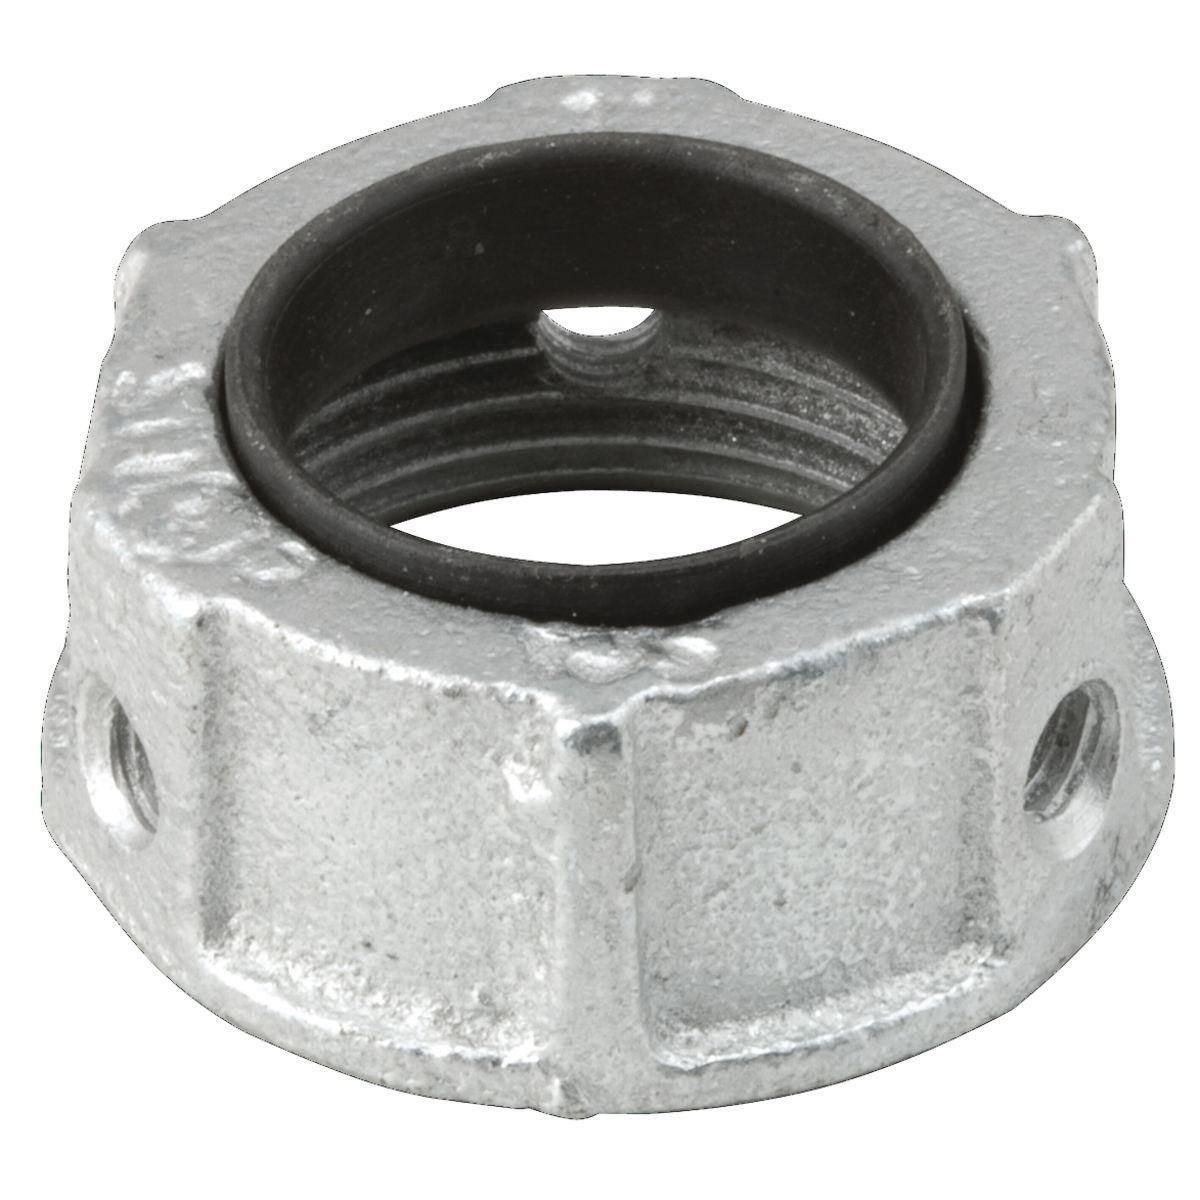 BUSHING 2 IN INSULATED MALL IRON